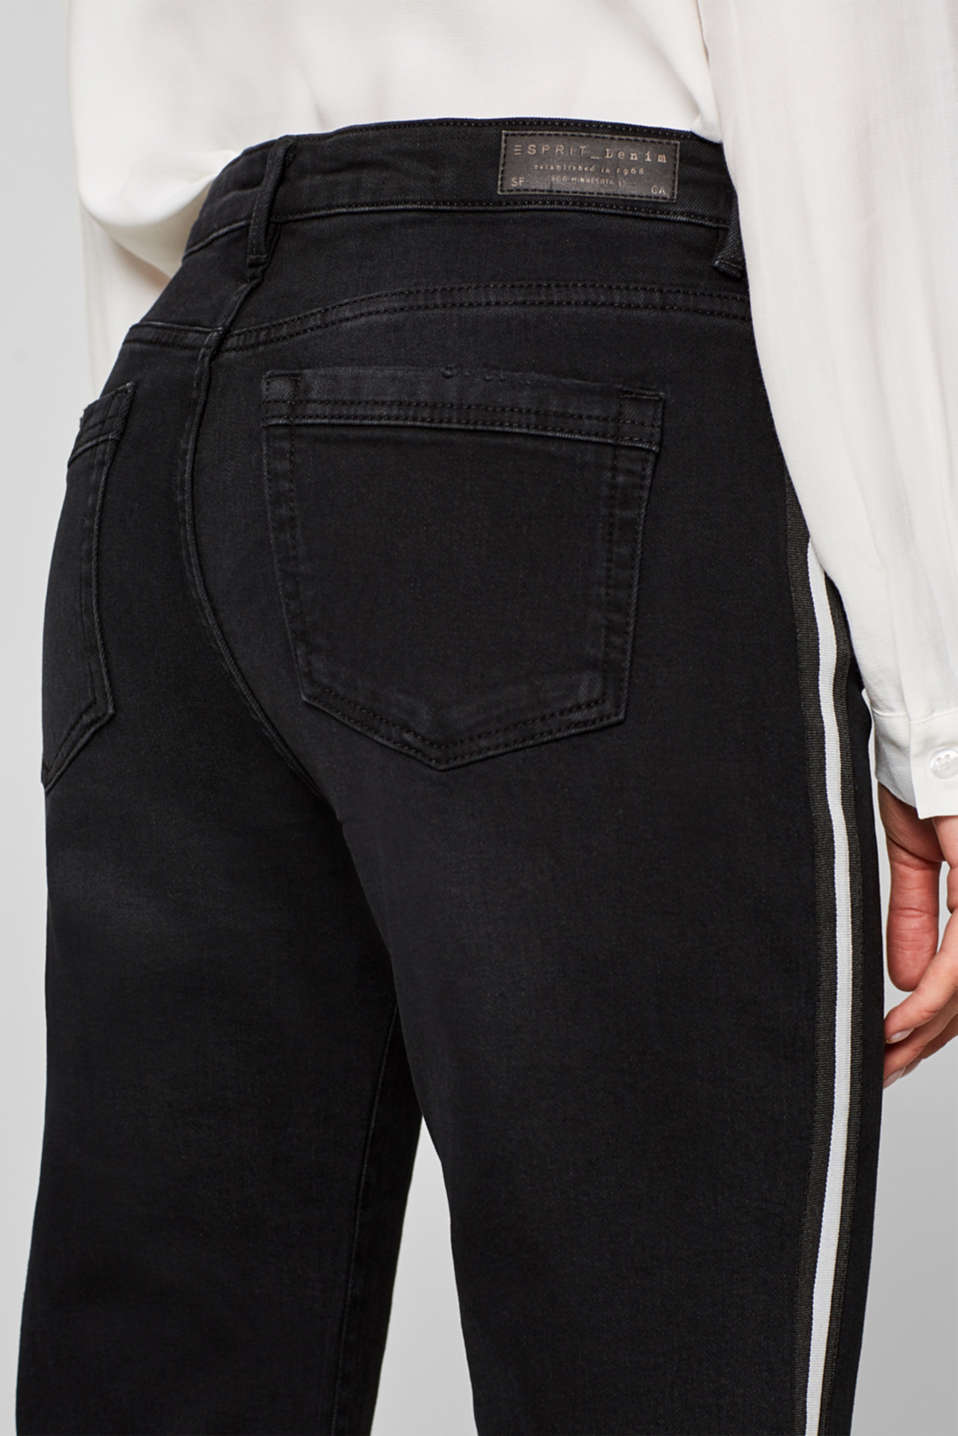 Pants denim, BLACK DARK WASH, detail image number 5